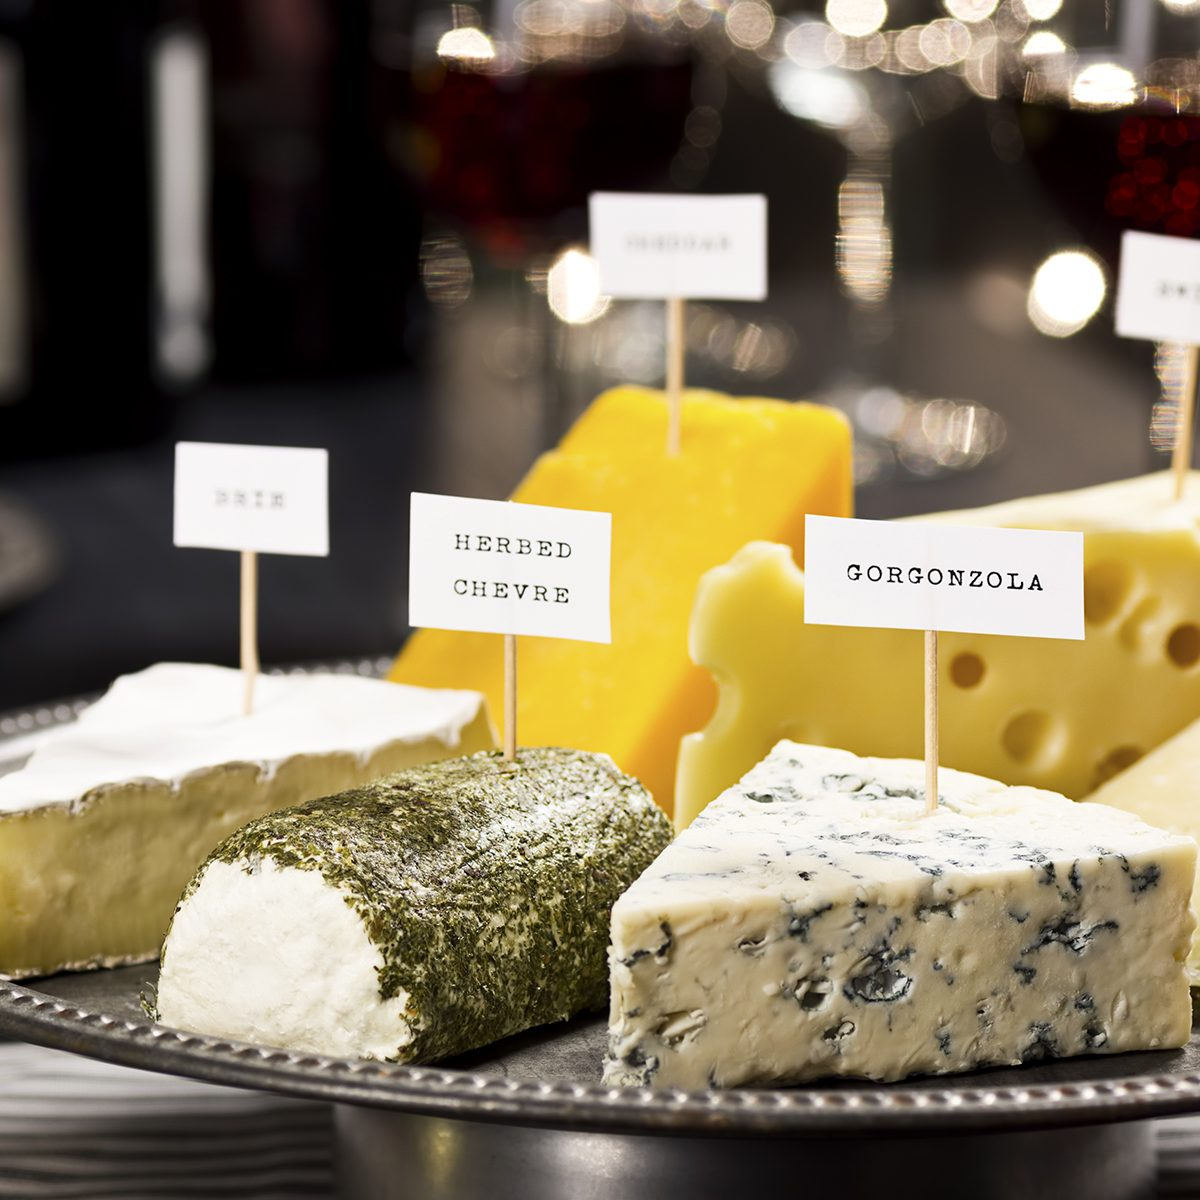 Cheese and Wine Tasting Party with Twinkly Holiday Lights in Background